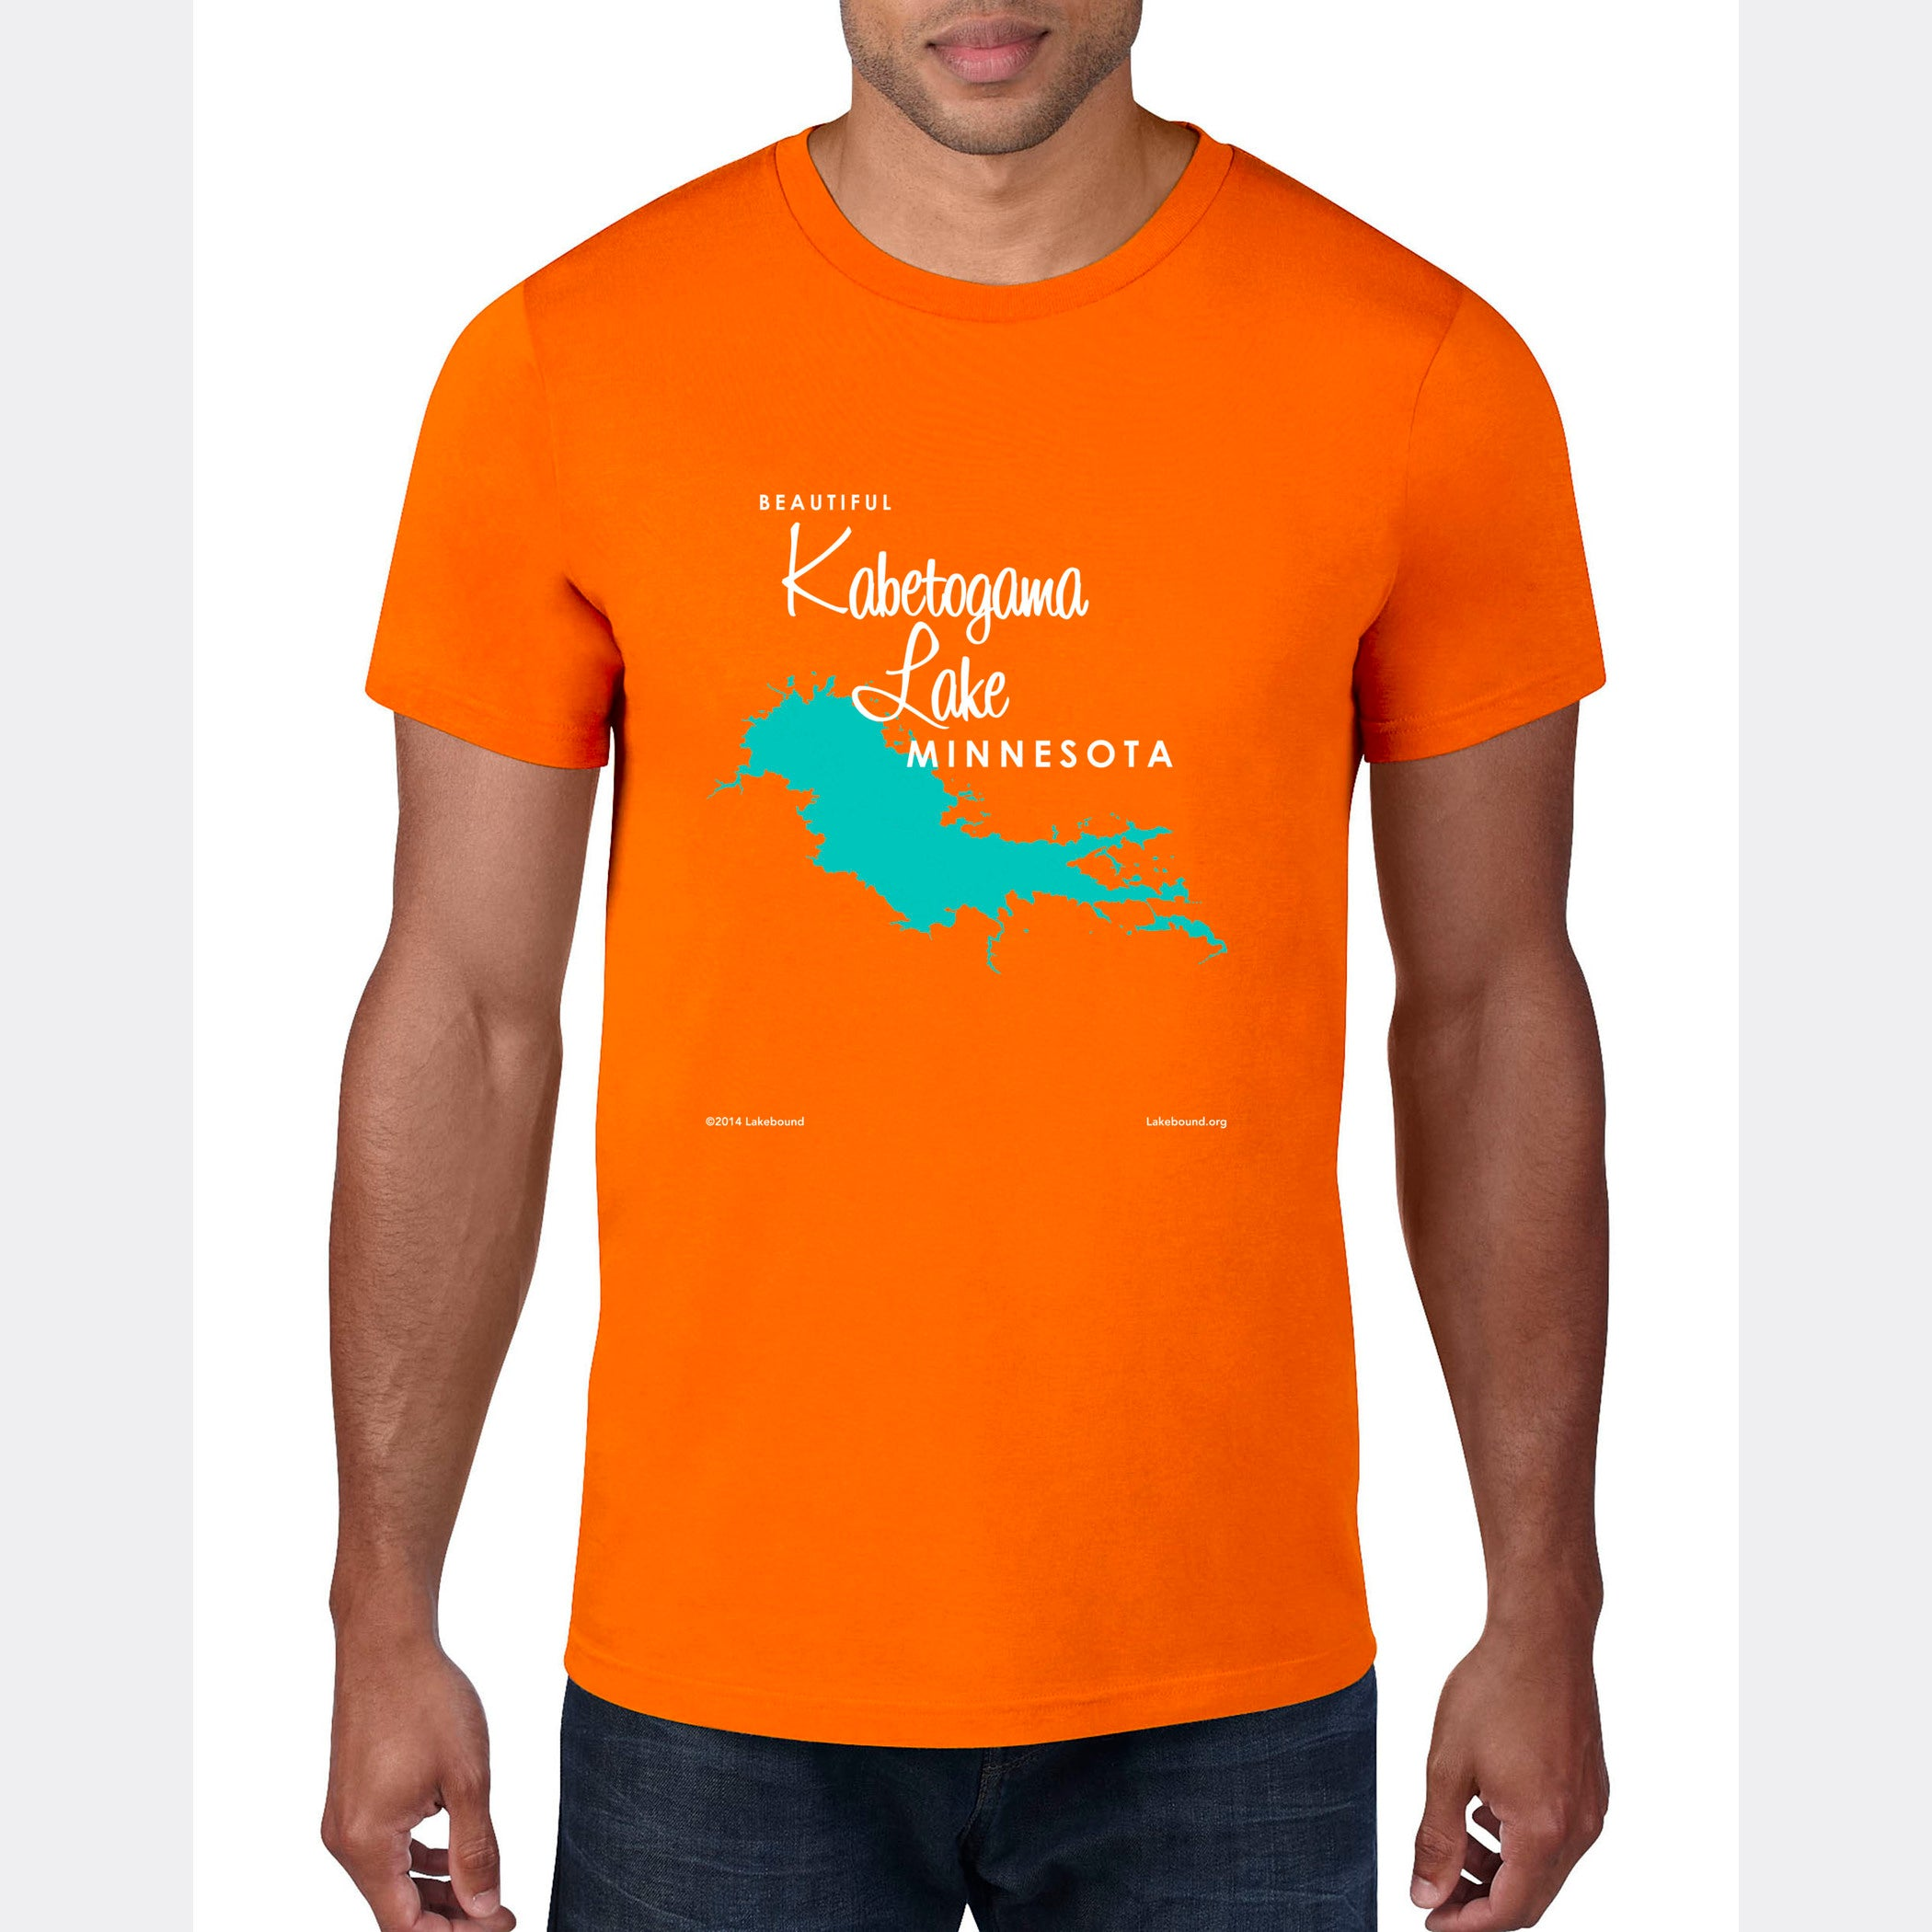 Kabetogama Lake Minnesota, T-Shirt